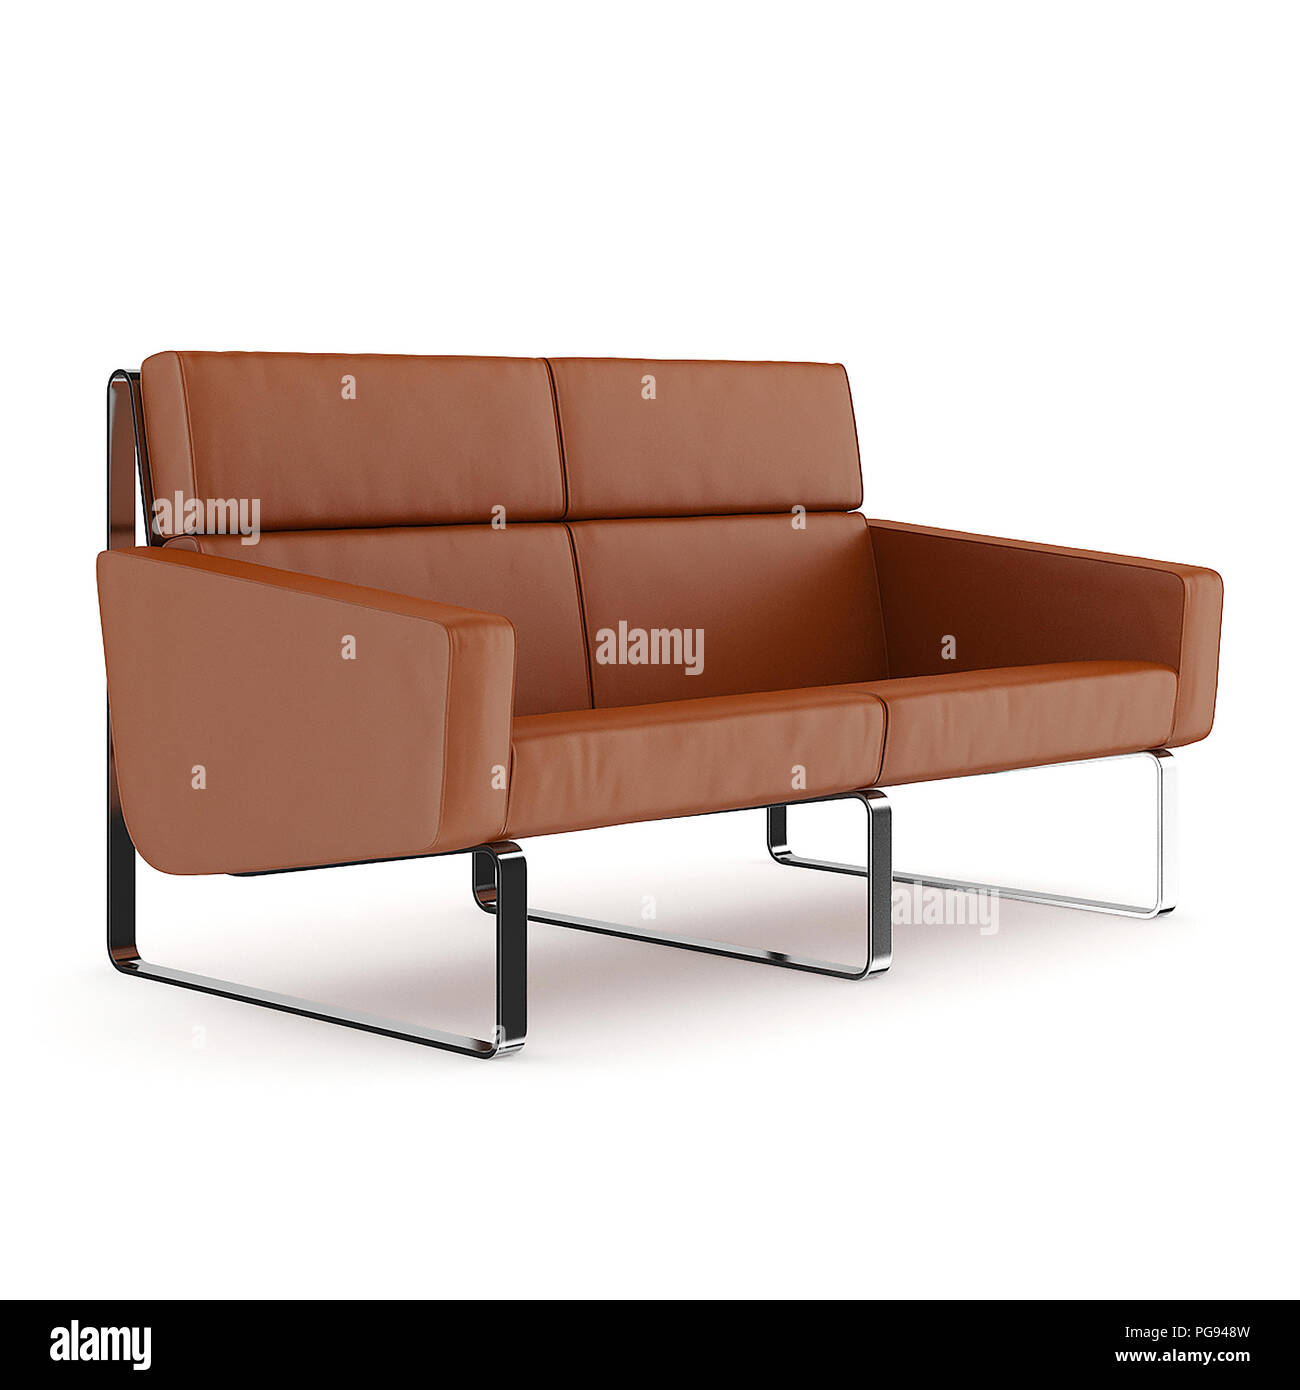 Modern Small Brown Leather Sofa On White Background 3d